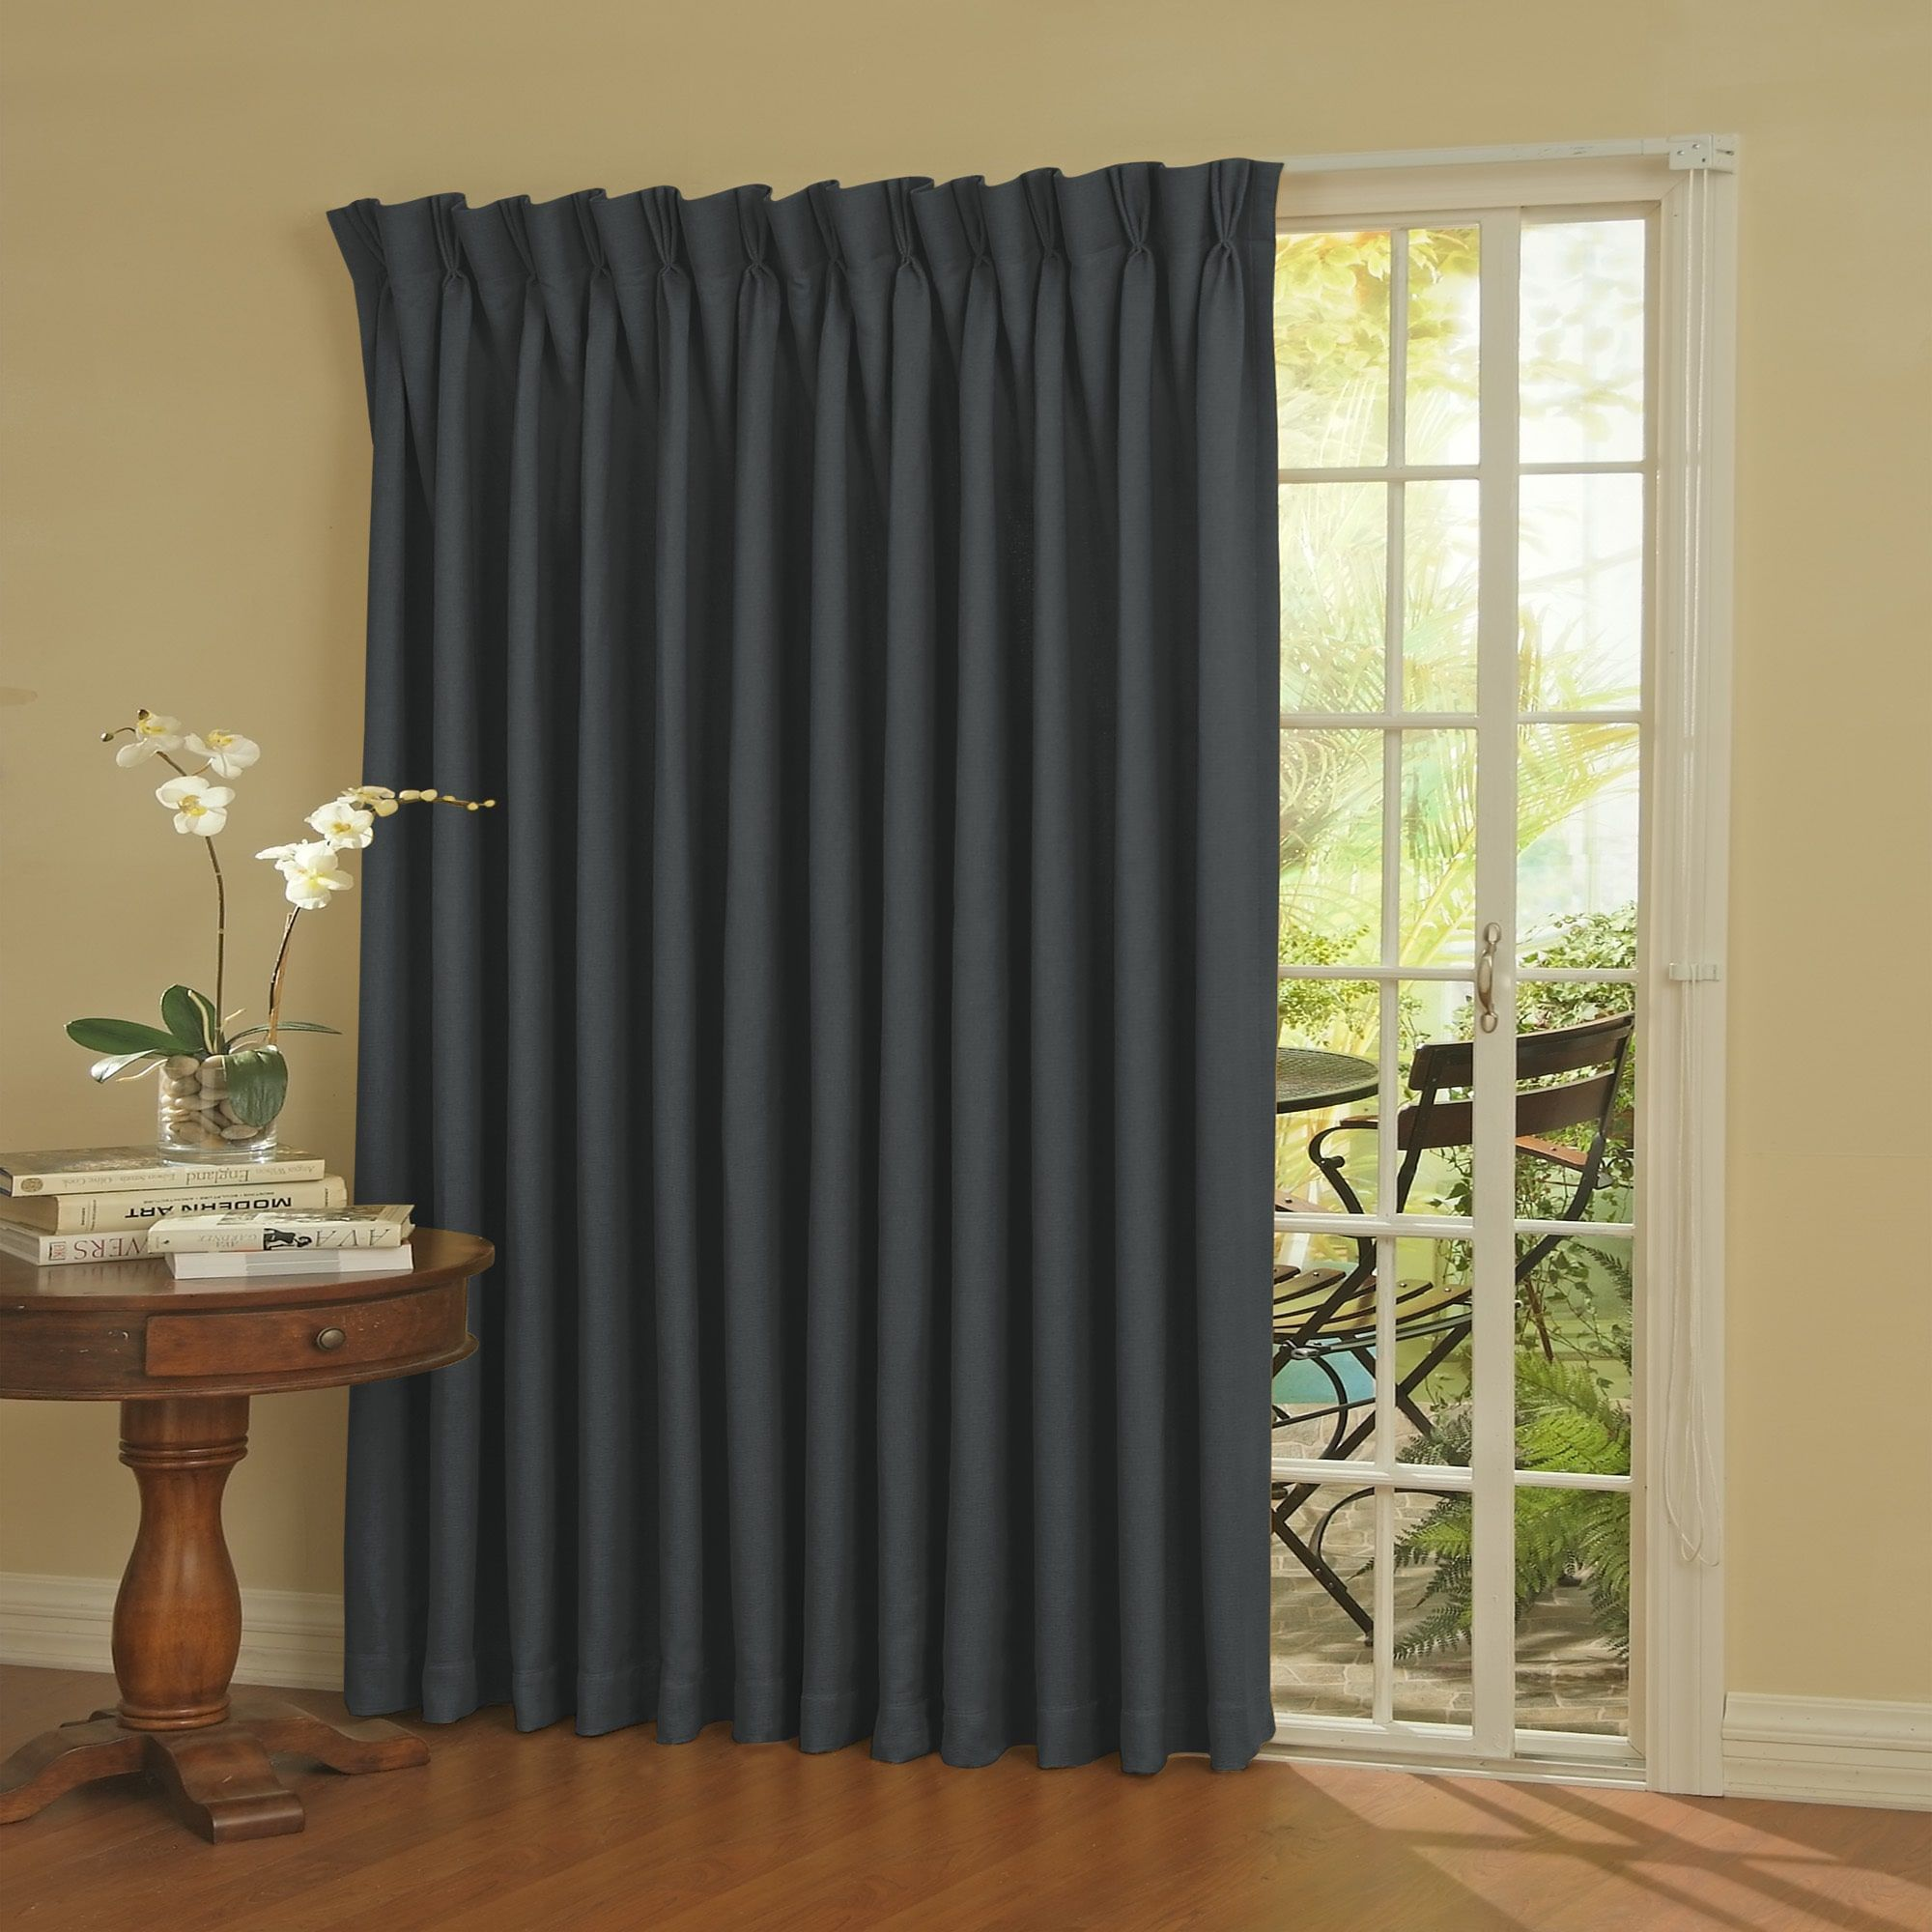 Charmant Eclipse Thermal Blackout Patio Door Curtain Panel